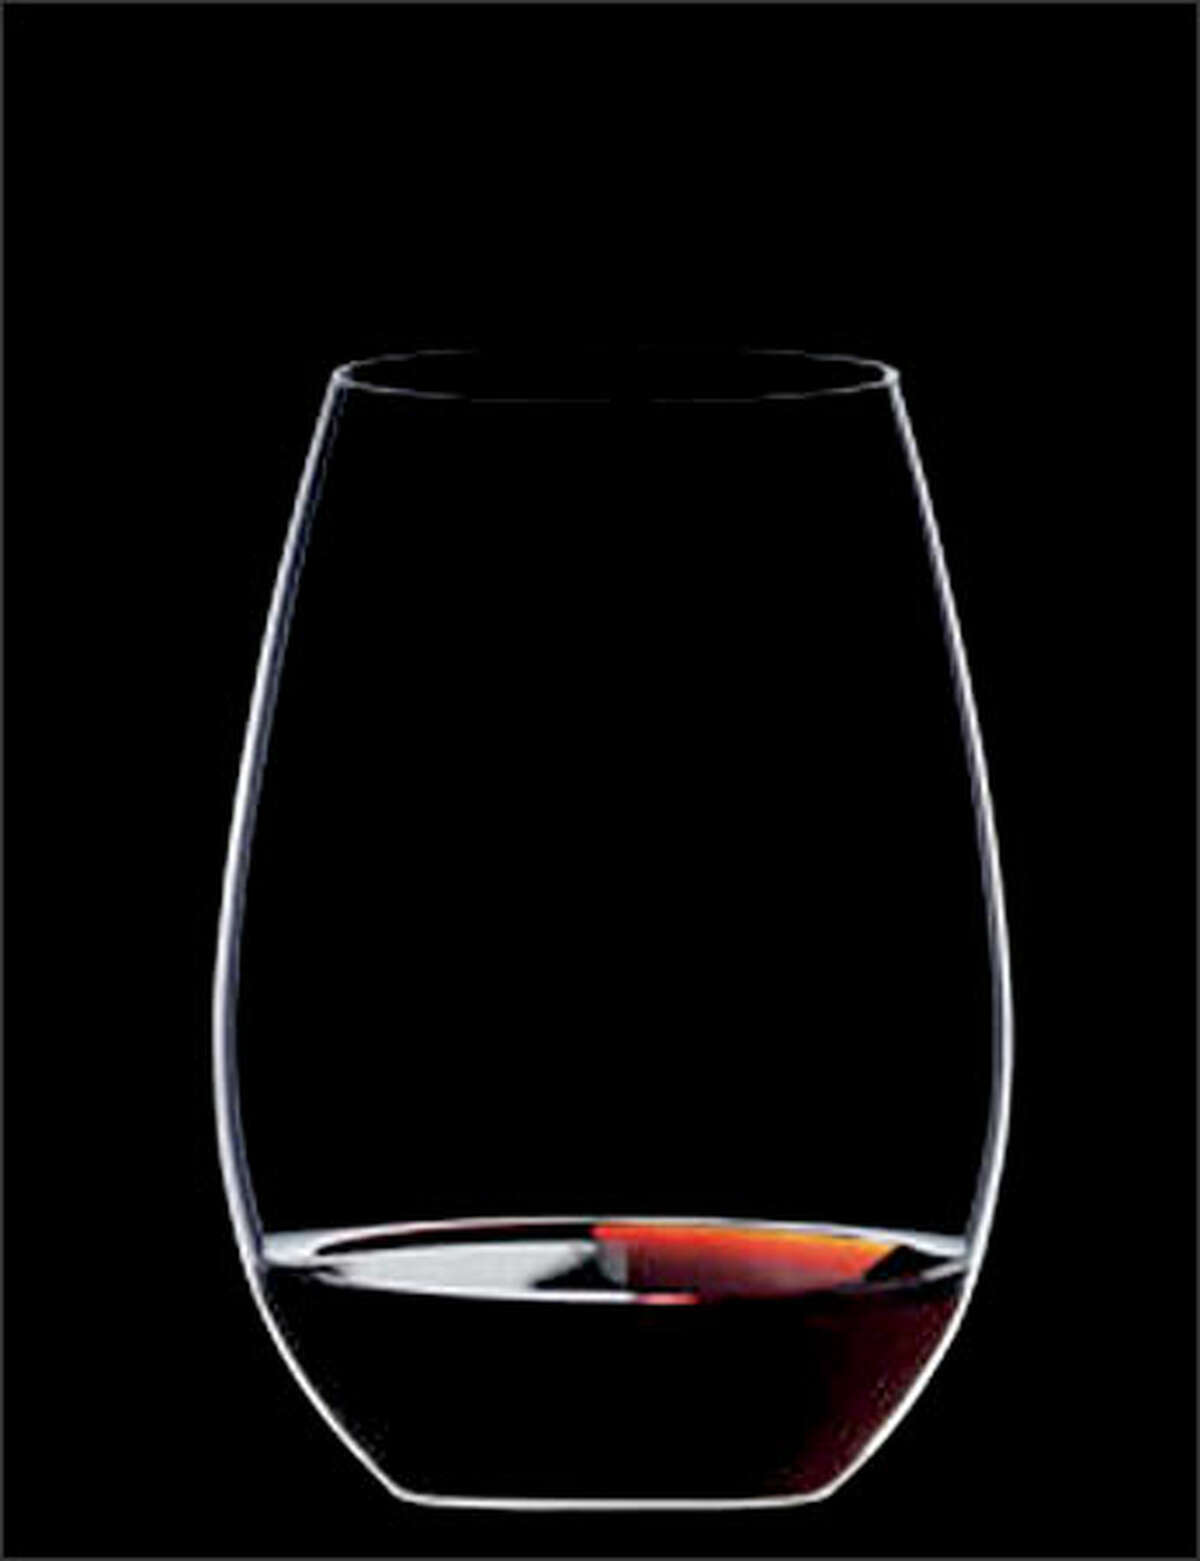 Of the 10 million glasses sold worldwide in 2004, 2.6 million were Maximilian Riedel's stemless O glasses.